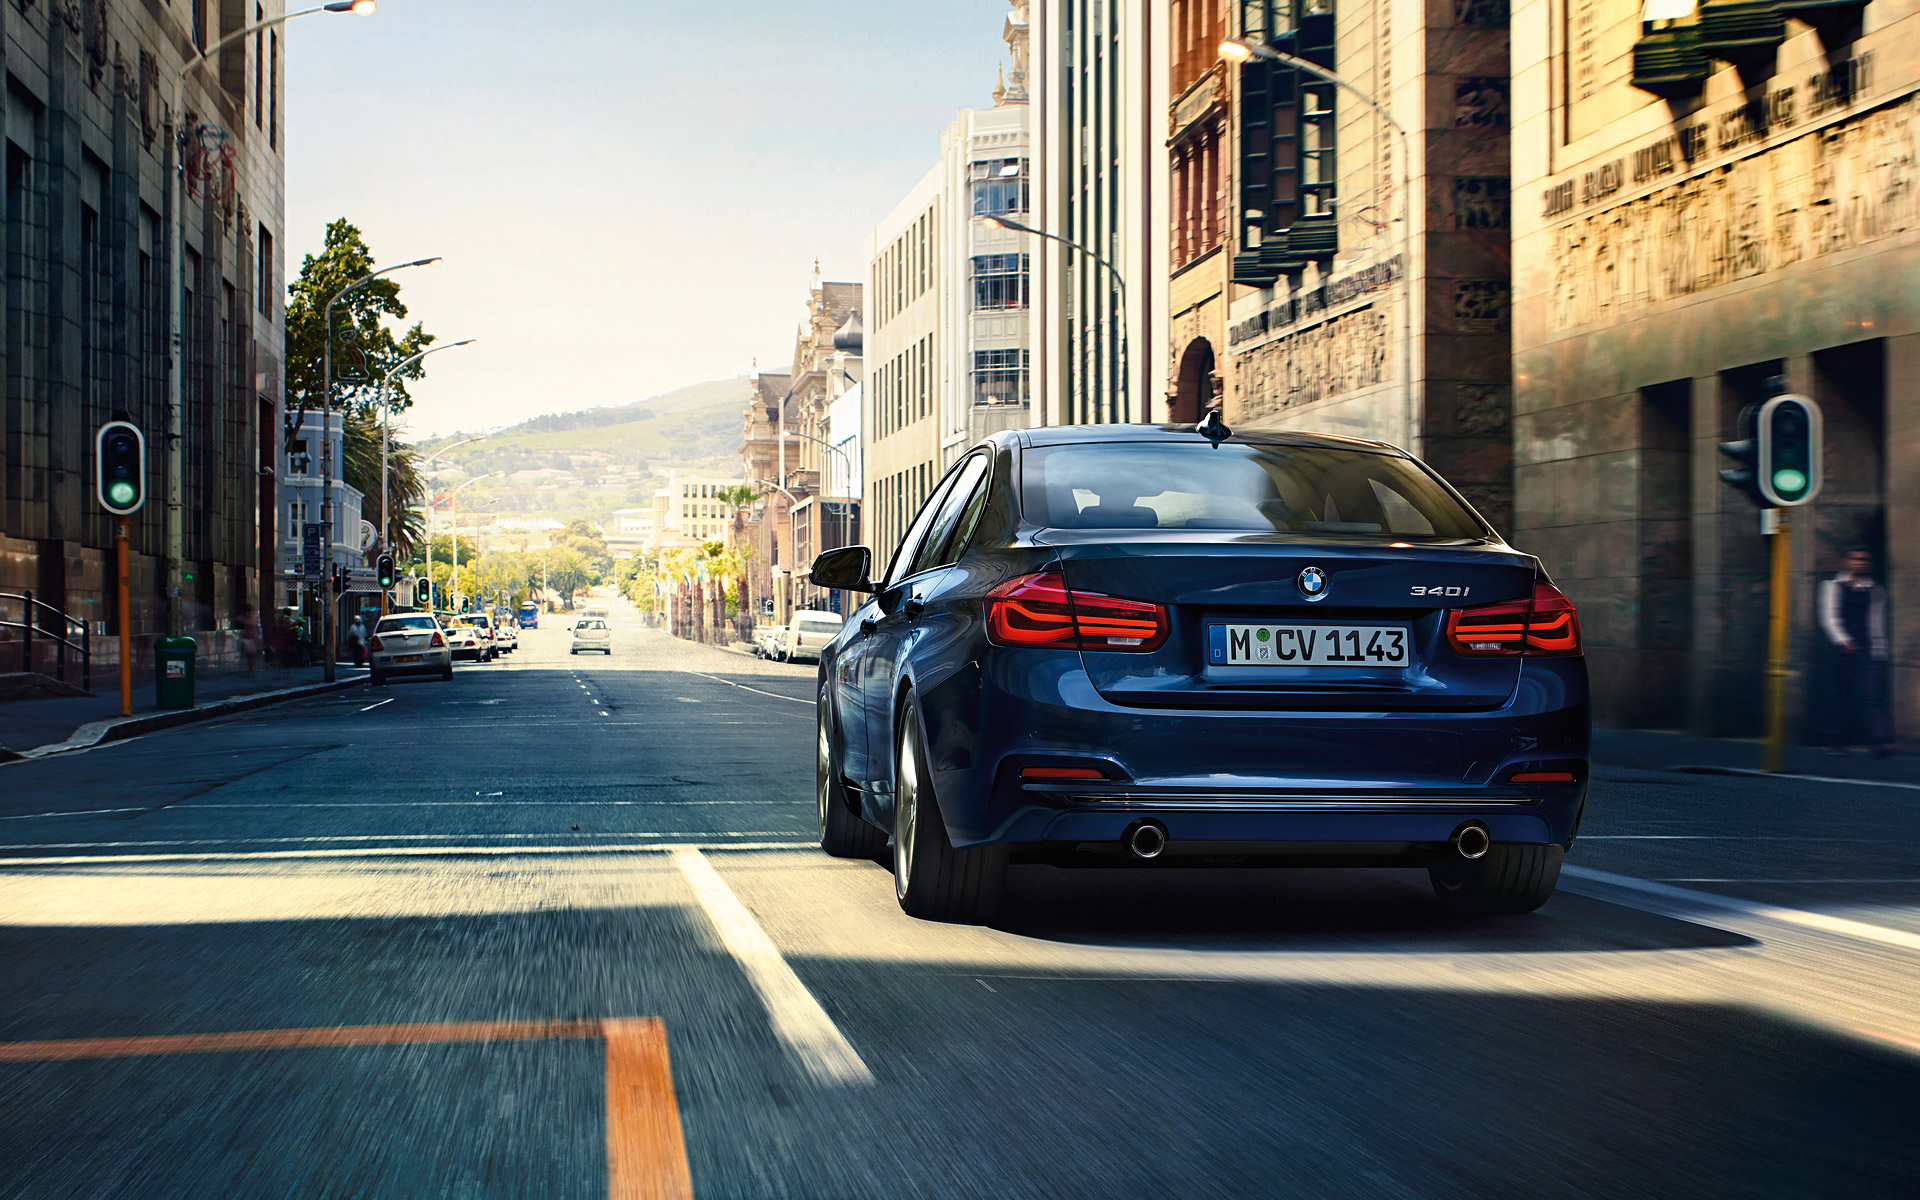 BMW 3 Series Sedan Rear View city driving